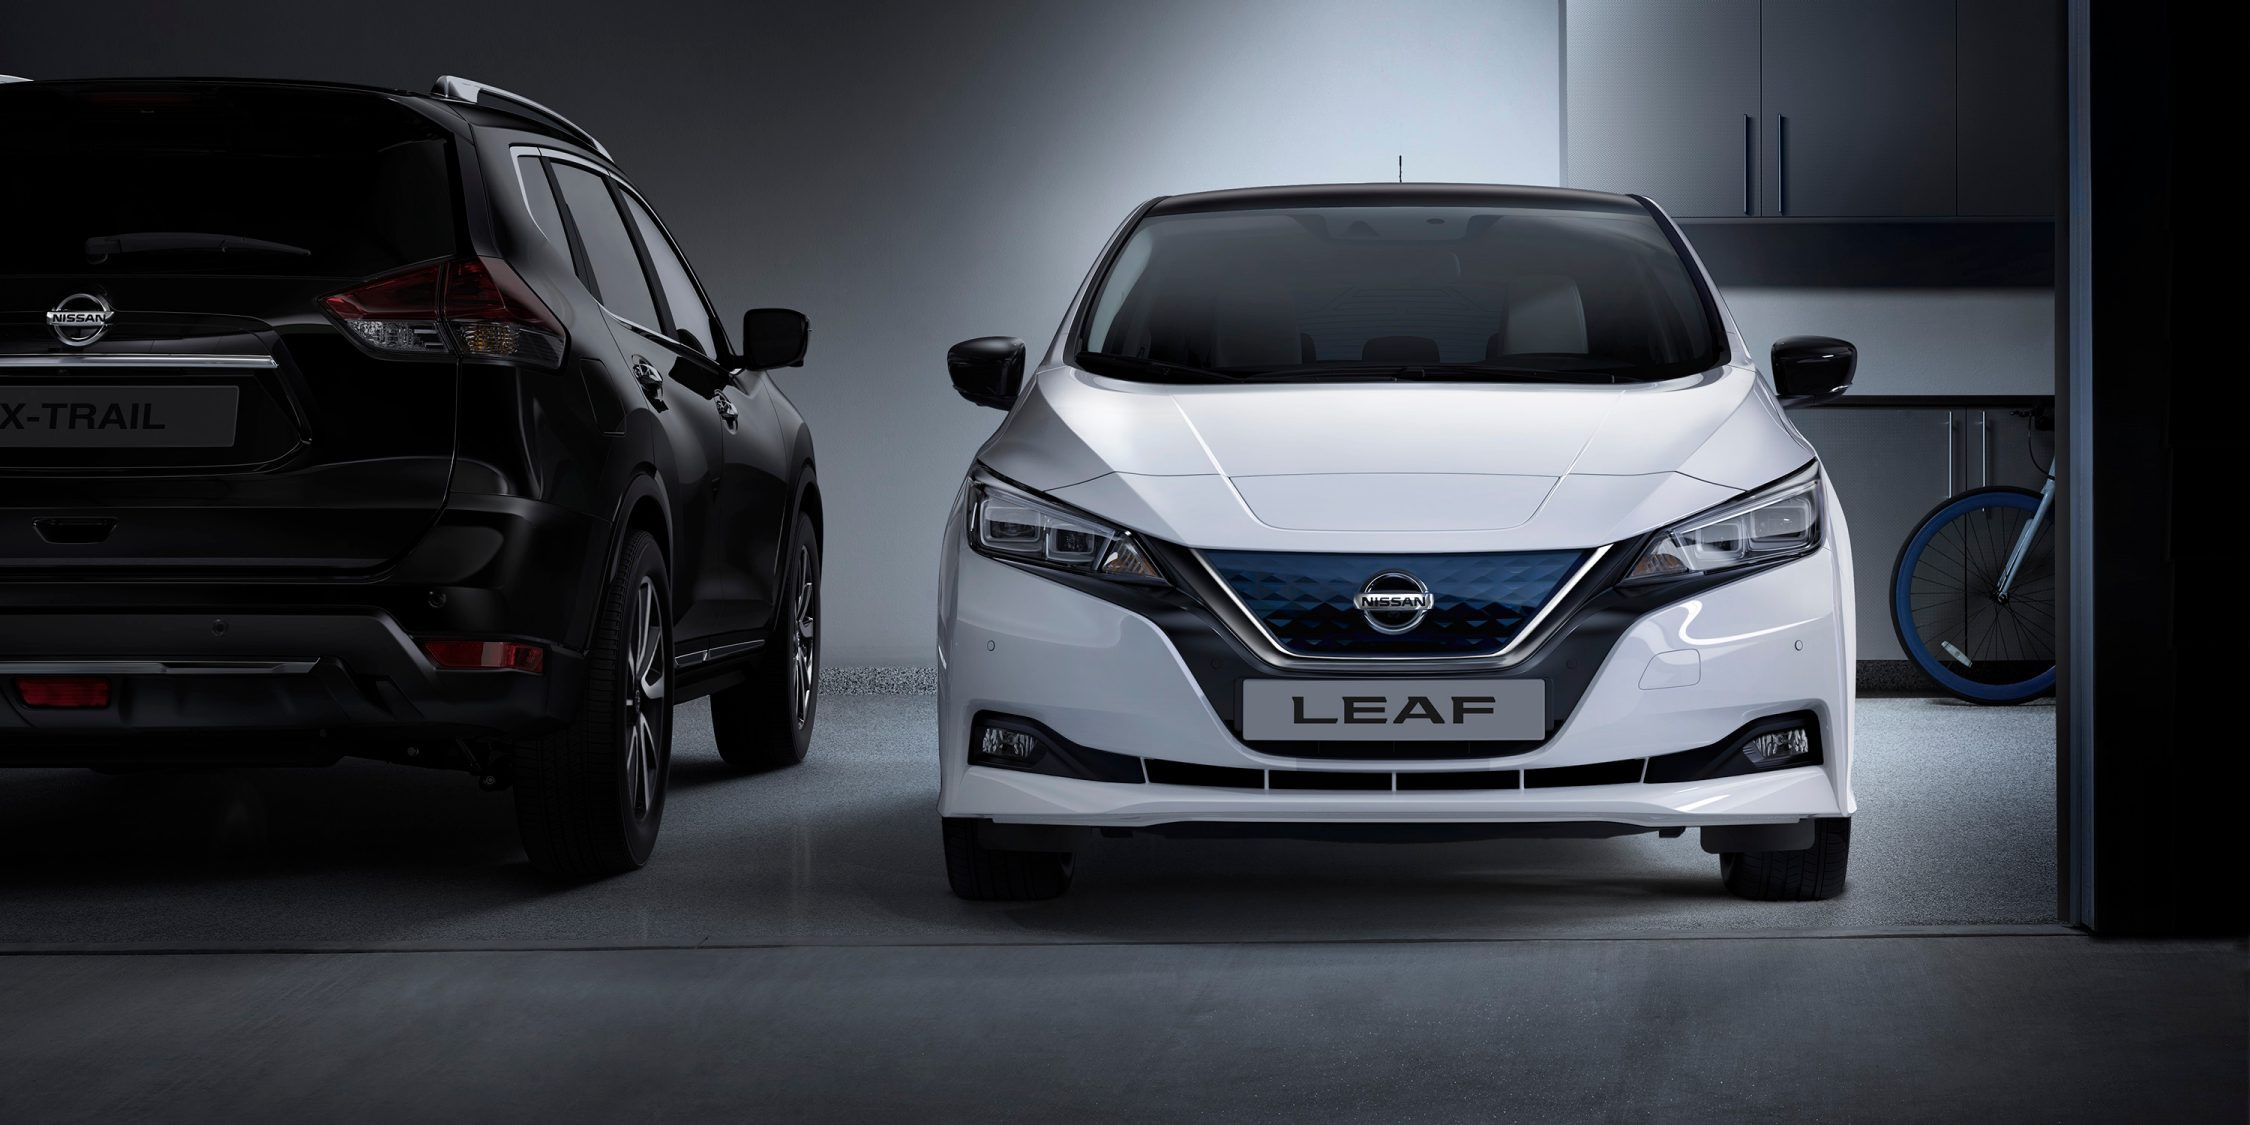 New Nissan LEAF in a garage